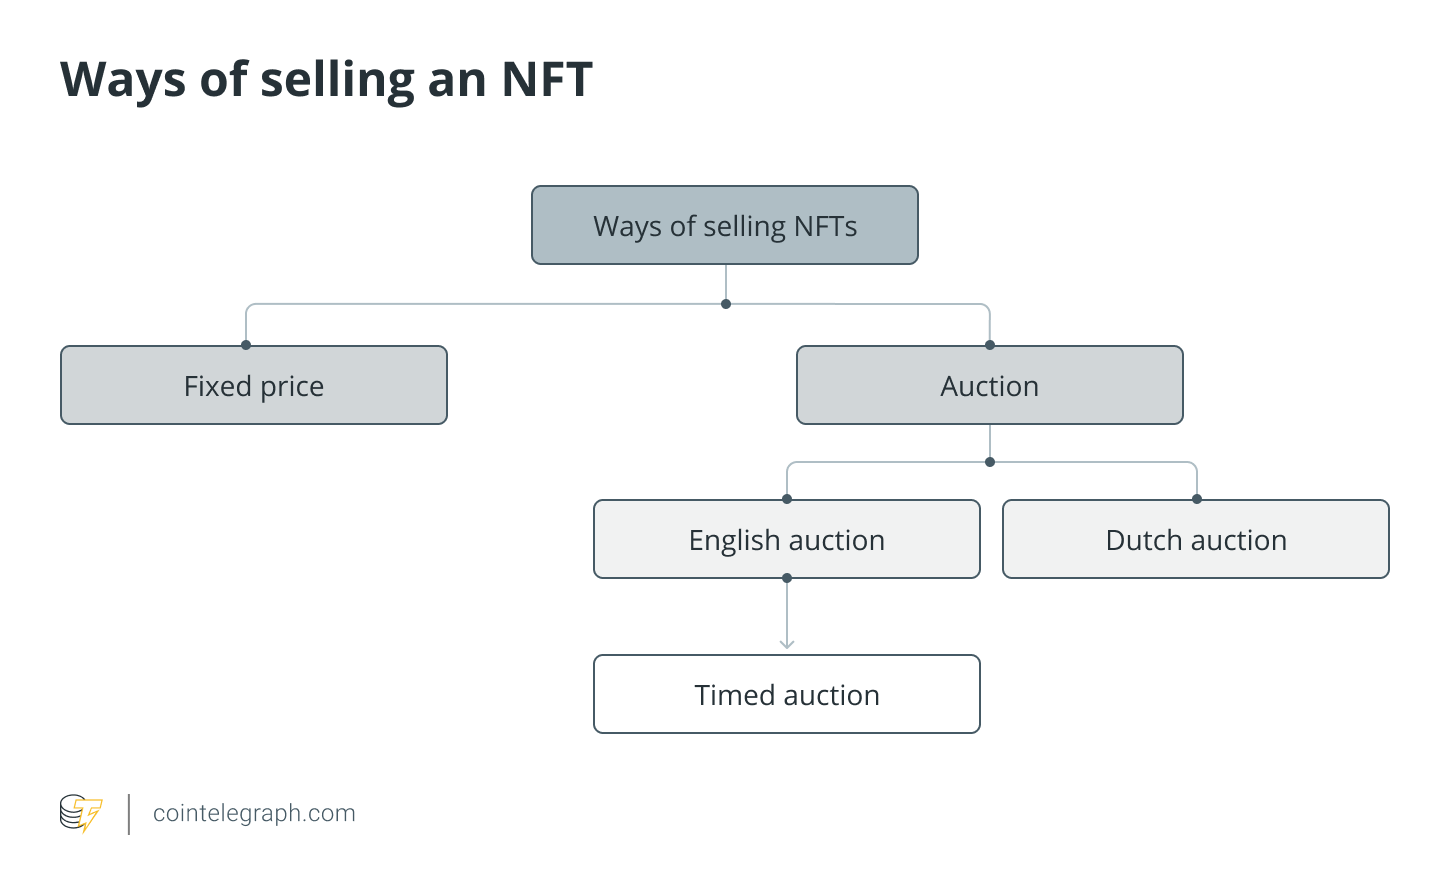 ways of selling an NFT